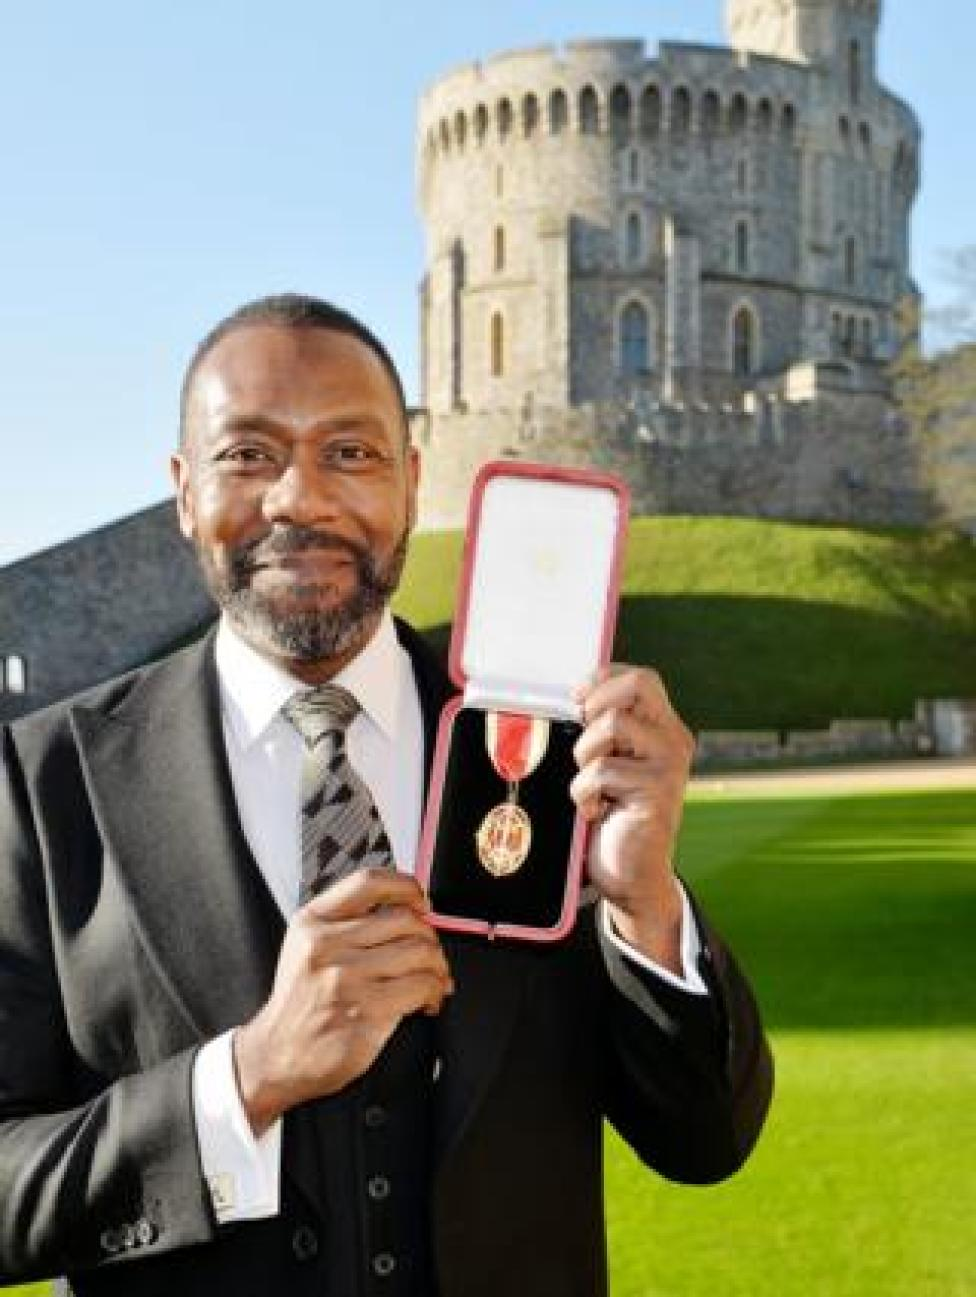 Sir Lenny Henry after receiving a Knighthood from Queen Elizabeth II during an Investiture ceremony at Windsor Castle on December 4, 2015 in Windsor, England